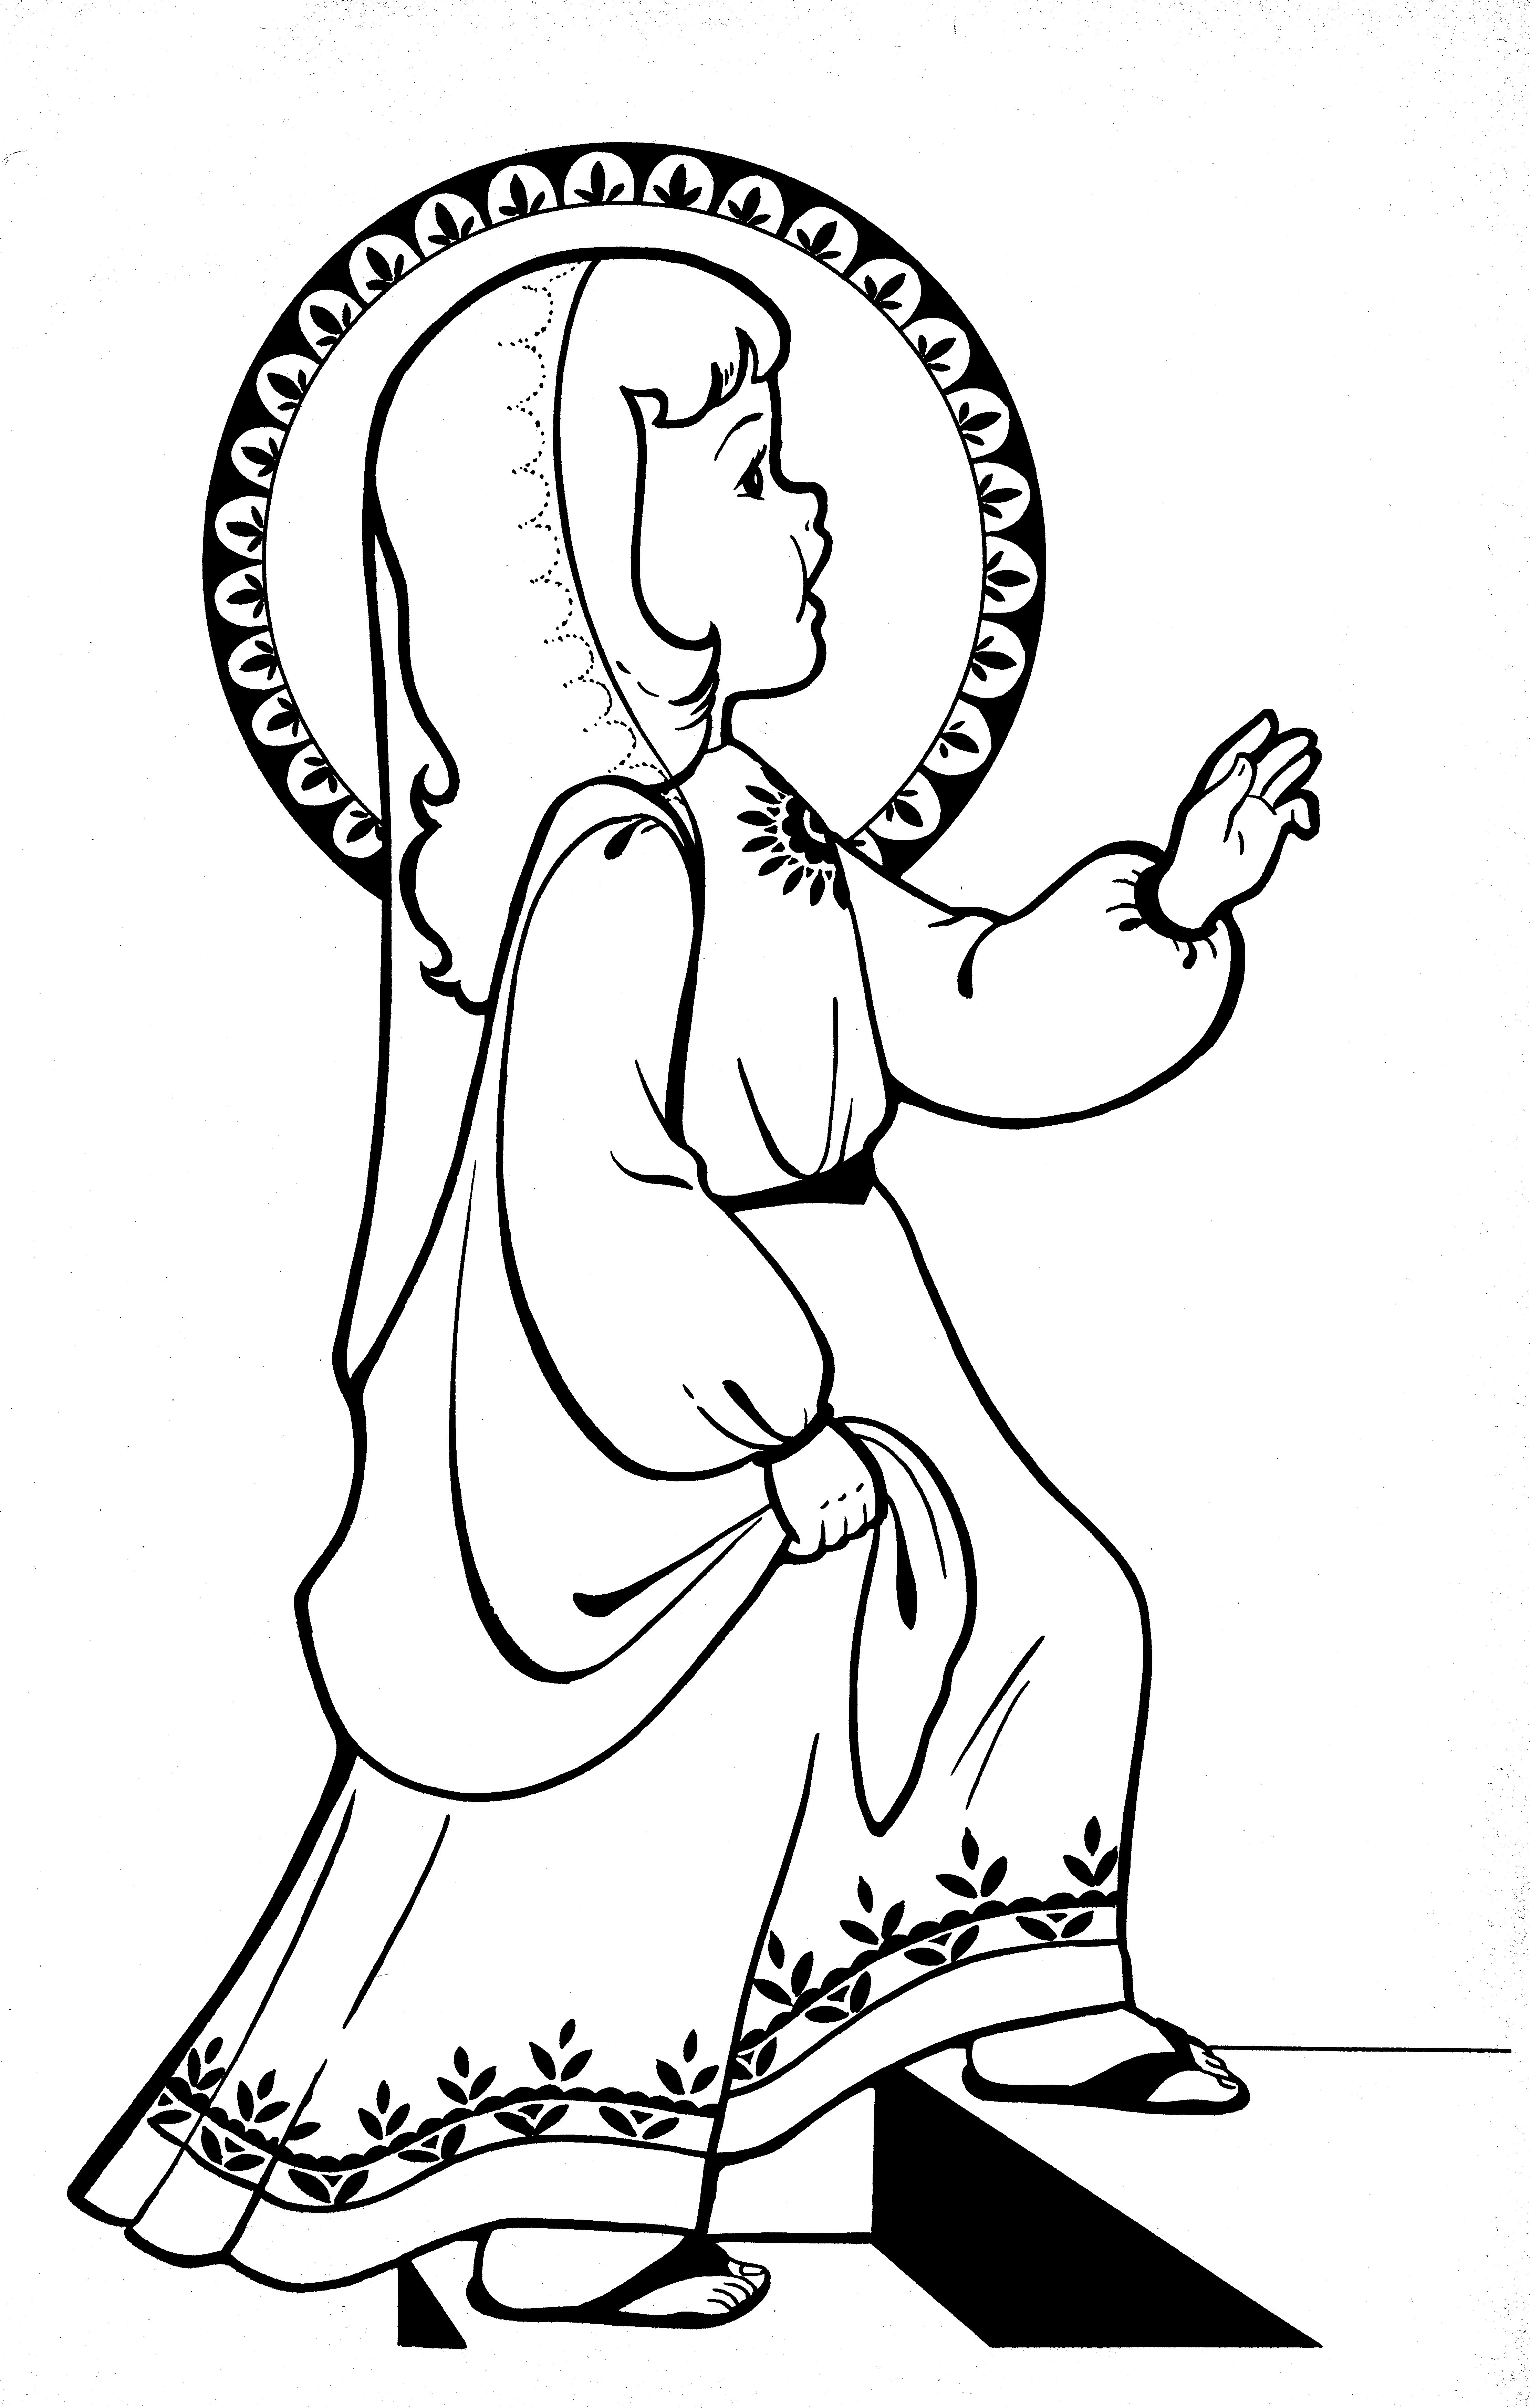 Baby Jesus And Mary Coloring Page ❤️+❤️ The Queenship Of Mary | 6993x4443